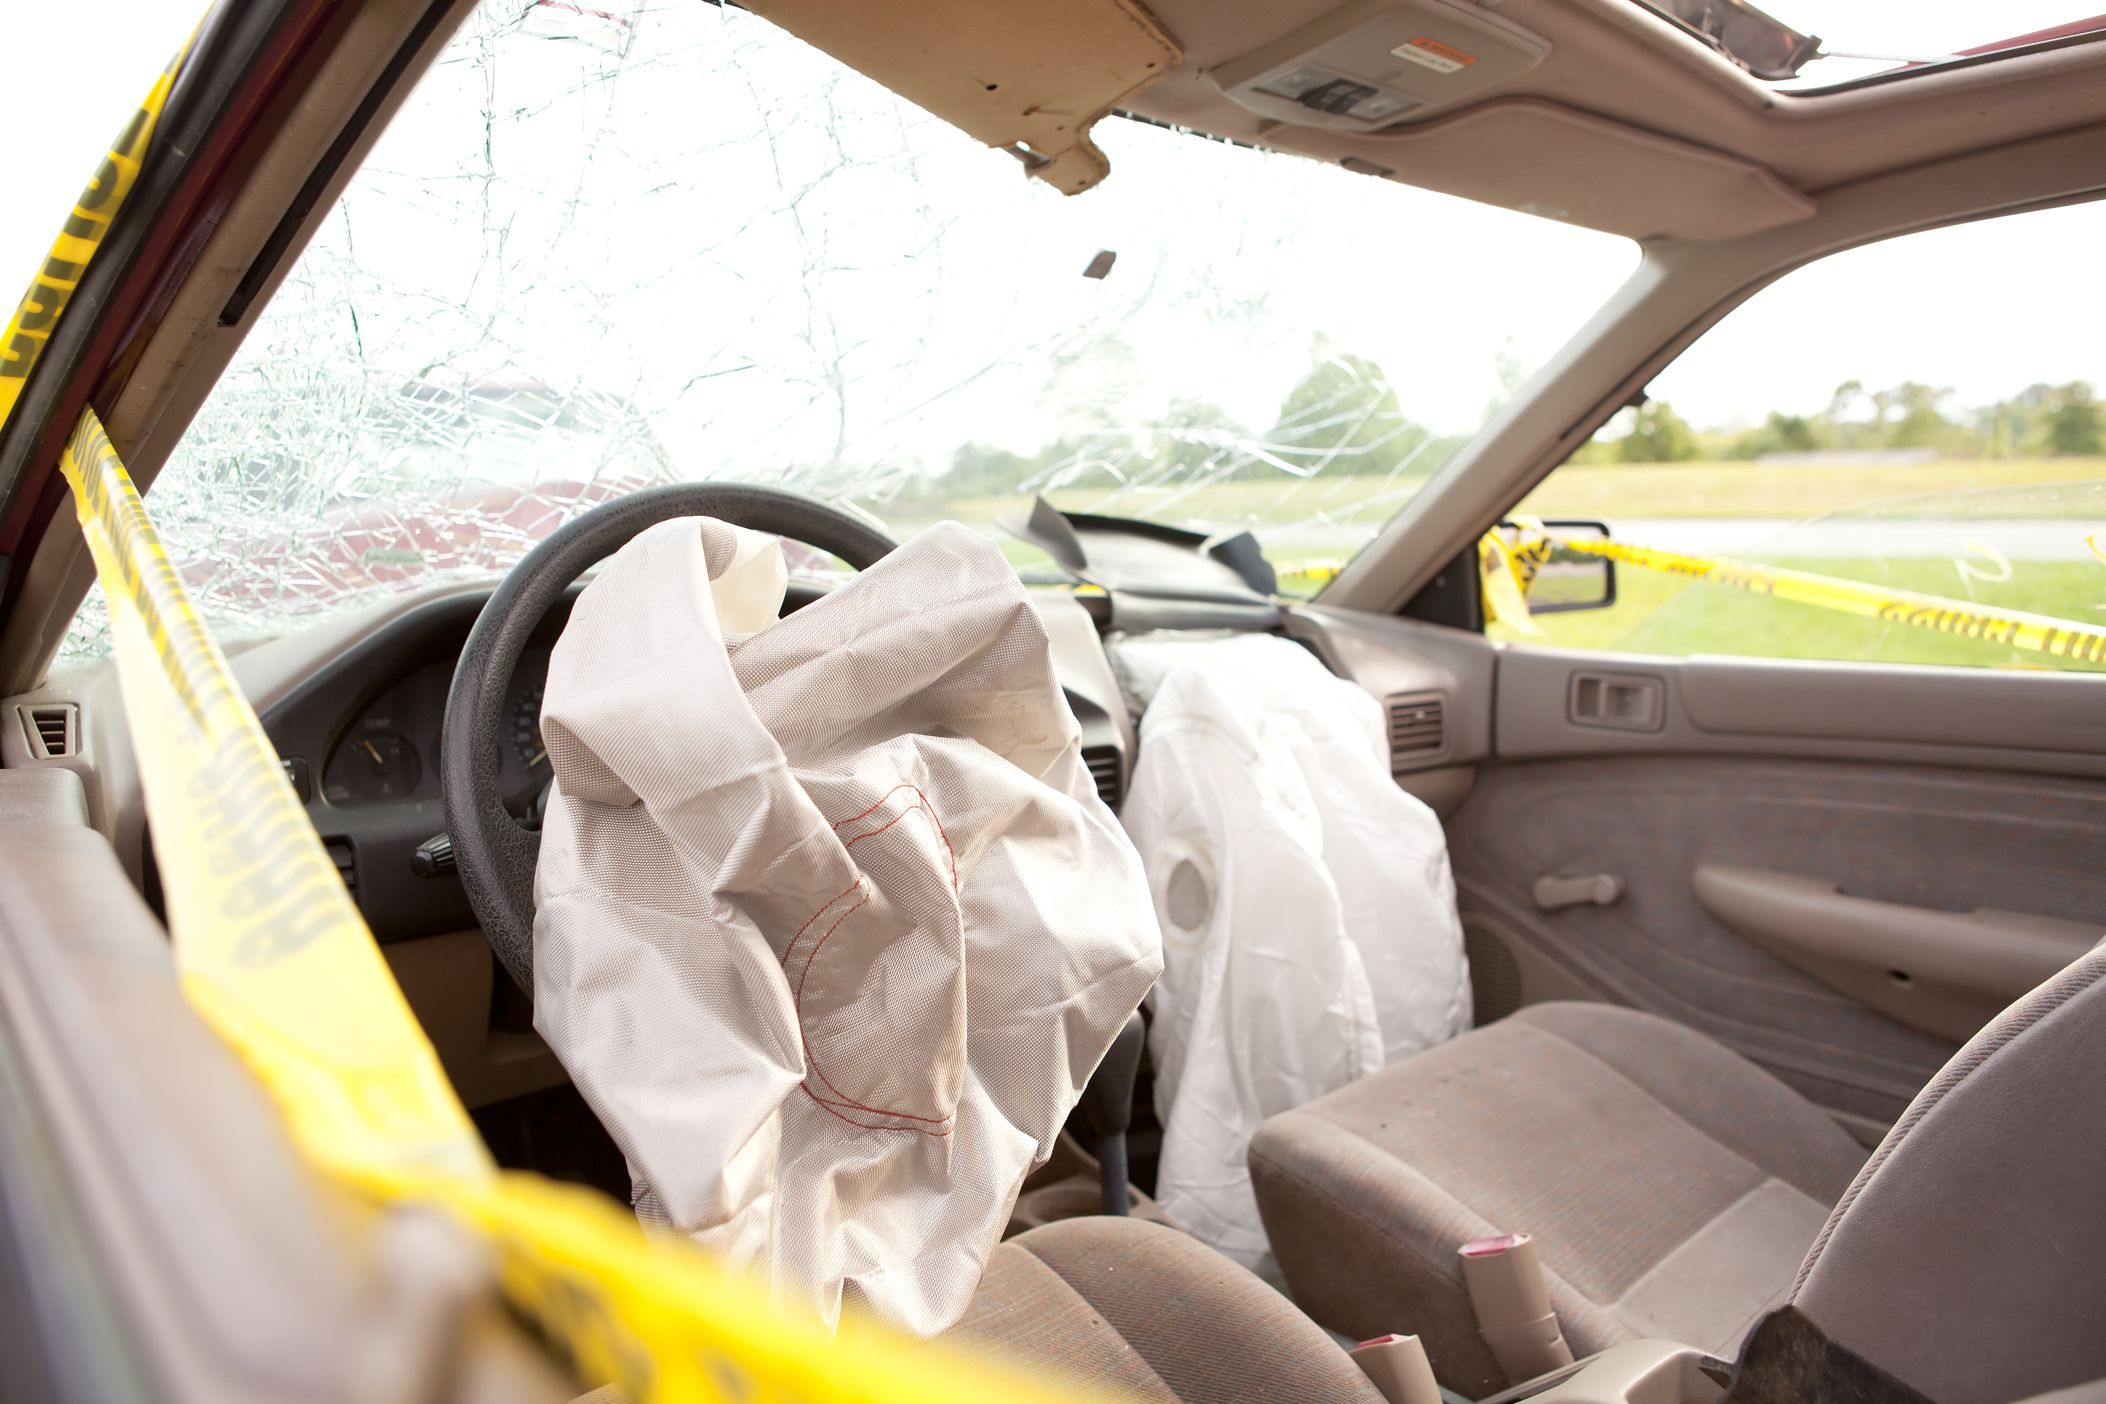 A defective airbag after a devastating car accident